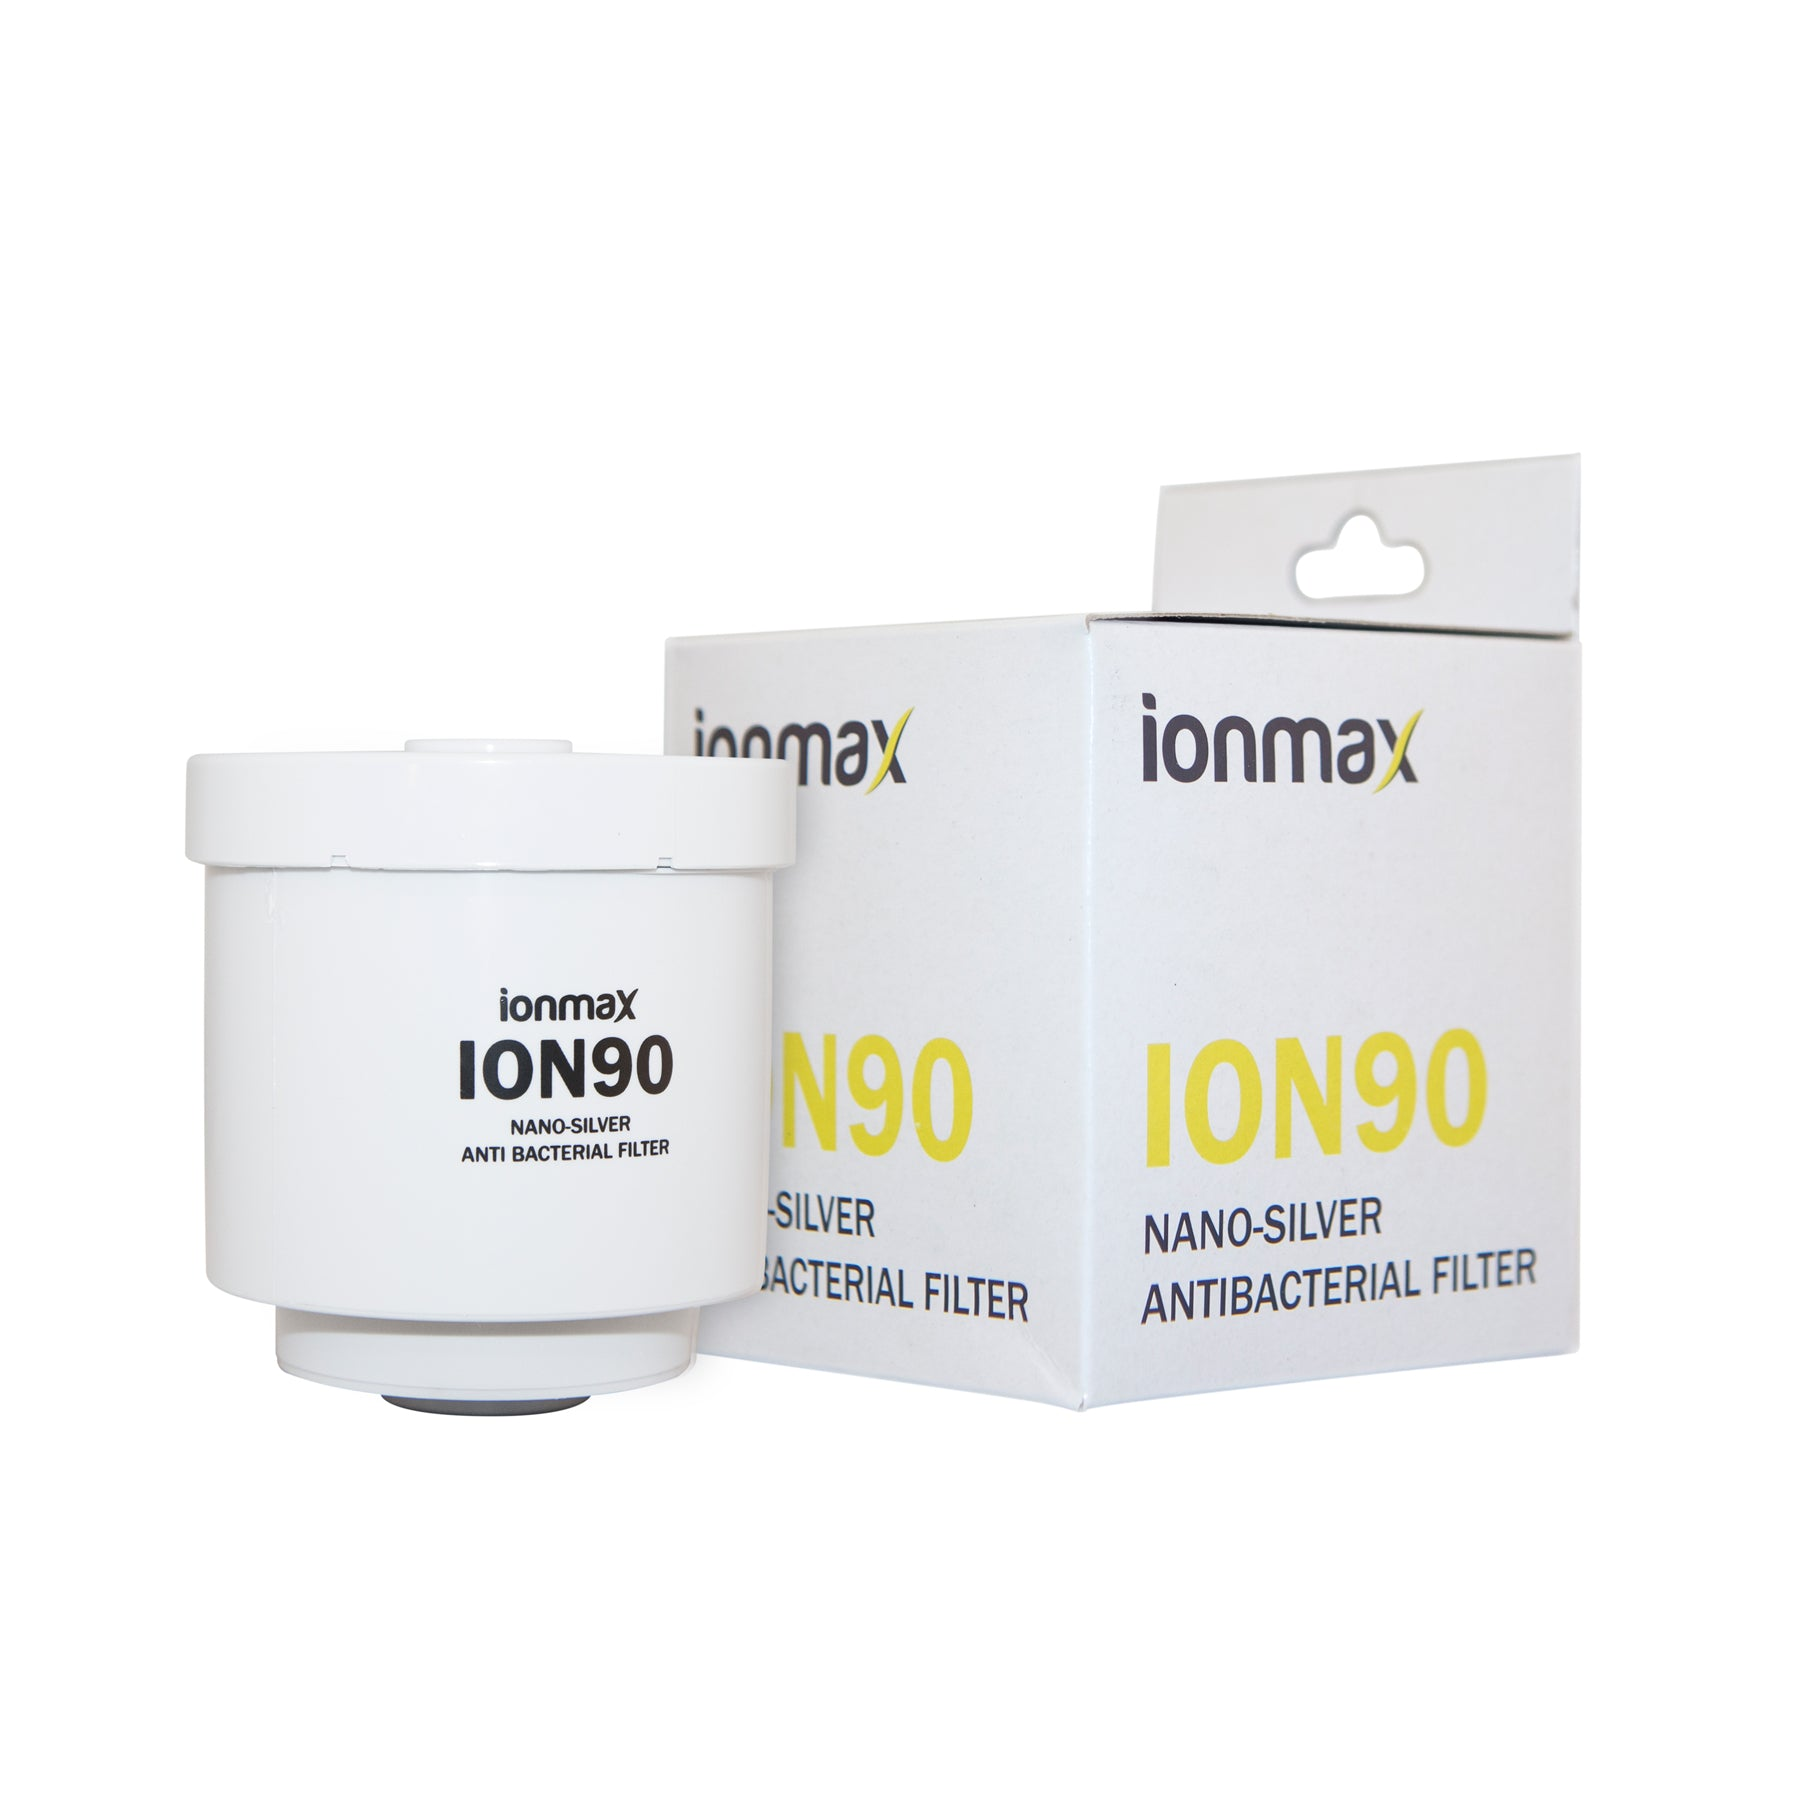 Ionmax ION90 (Parts)-Humidifier Accessories-Andatech